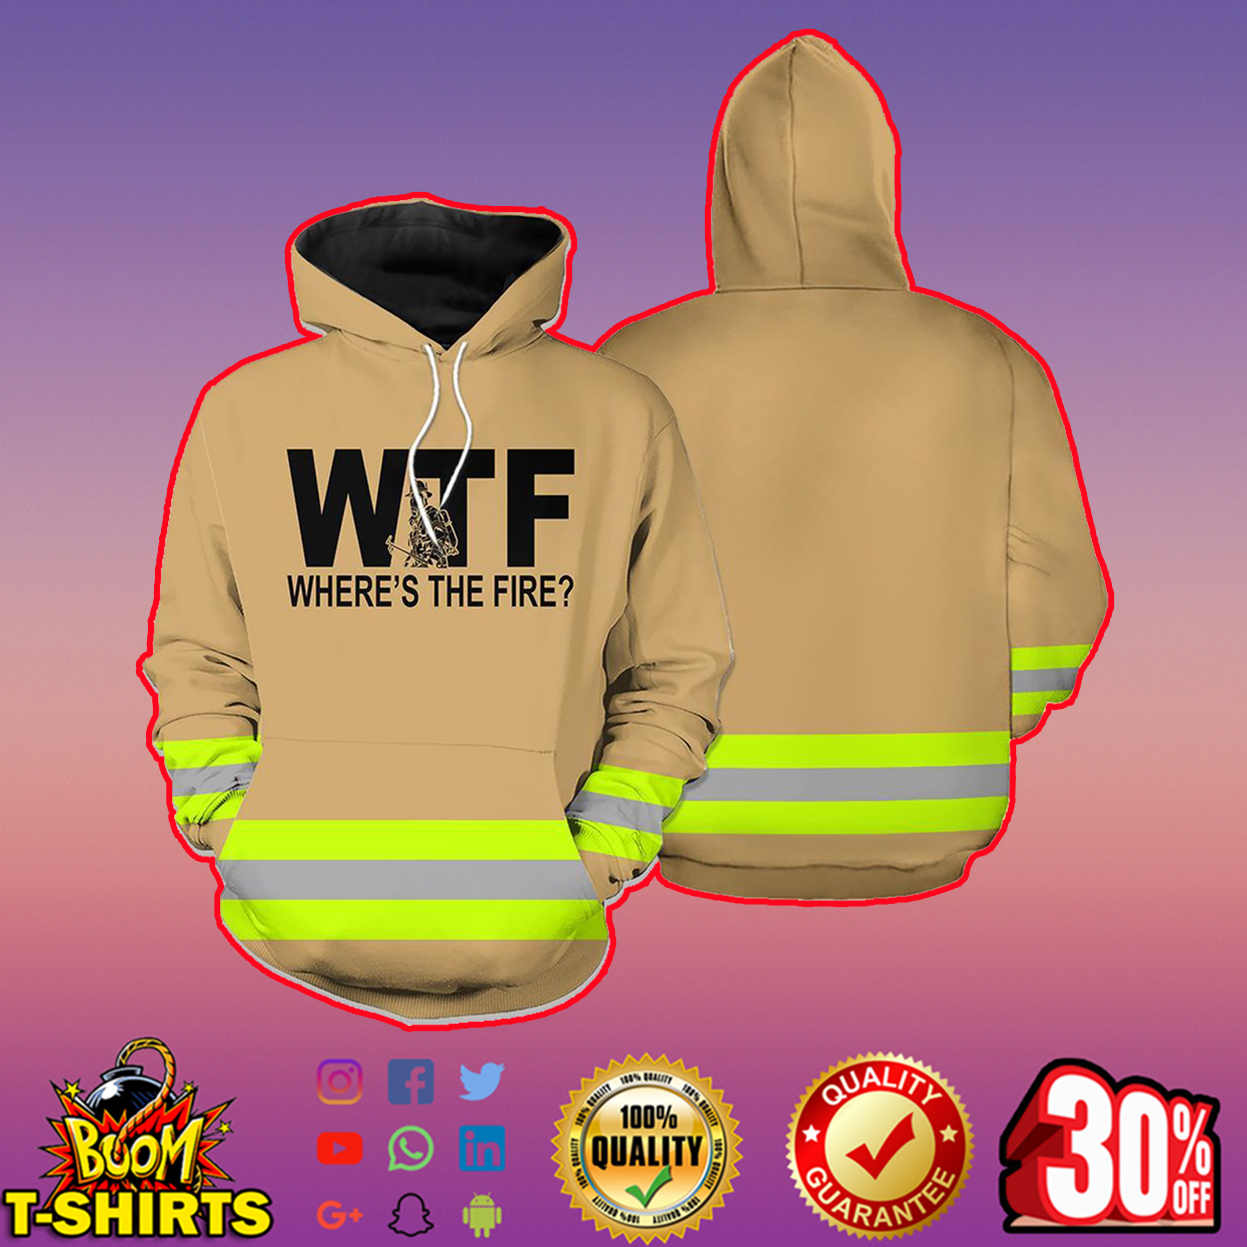 Where's The Fire WTF Firefighter 3D Hoodie - brown